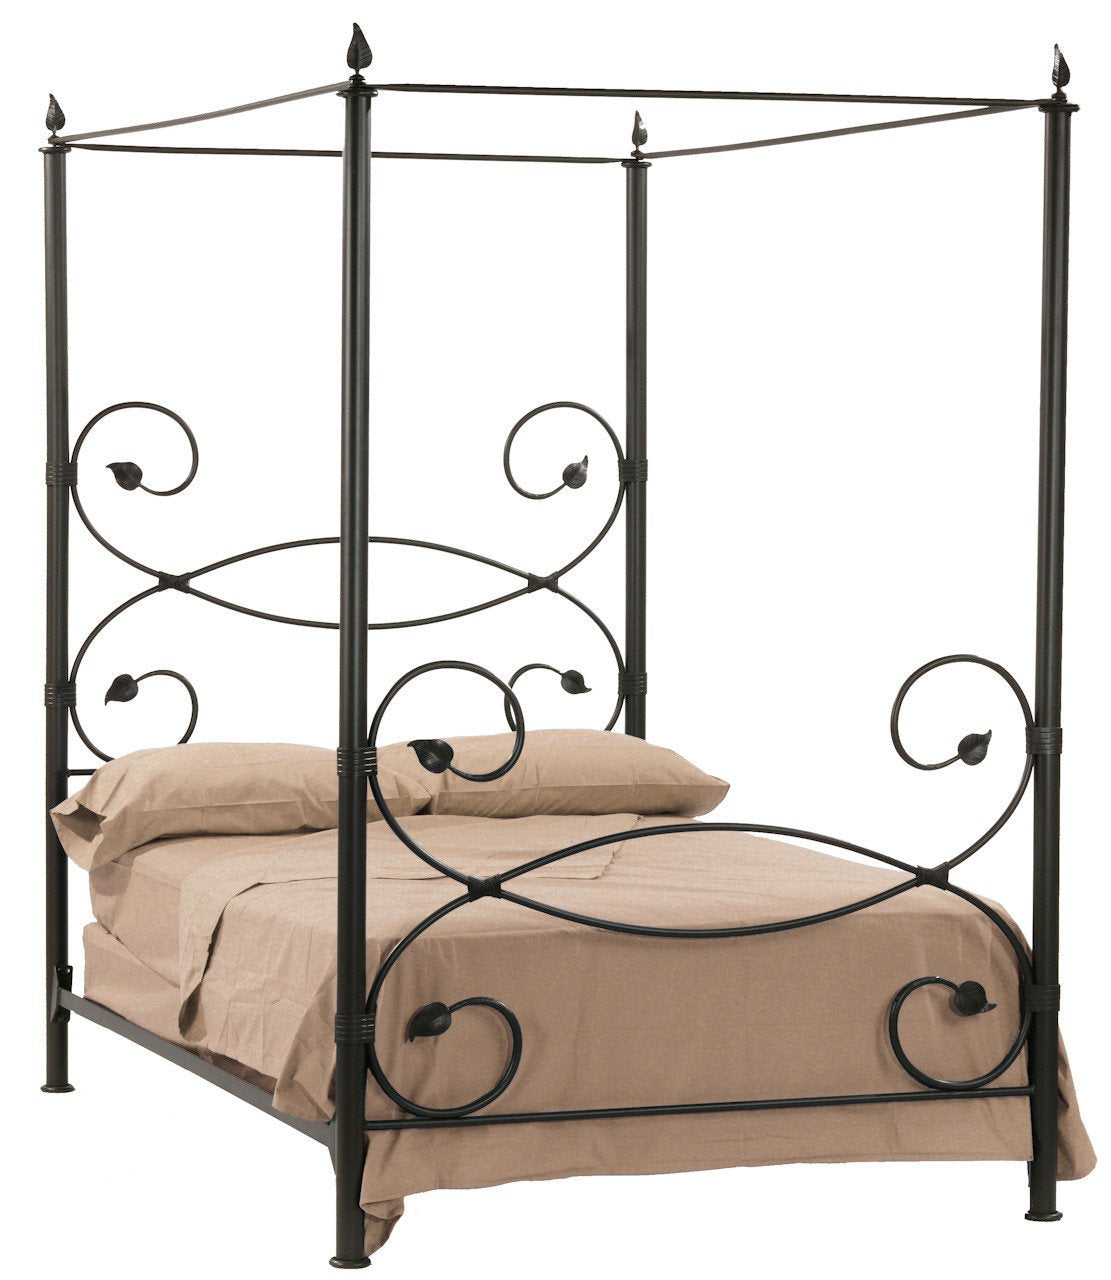 Canopy California King Bed Leaf - Stone County Bed Image